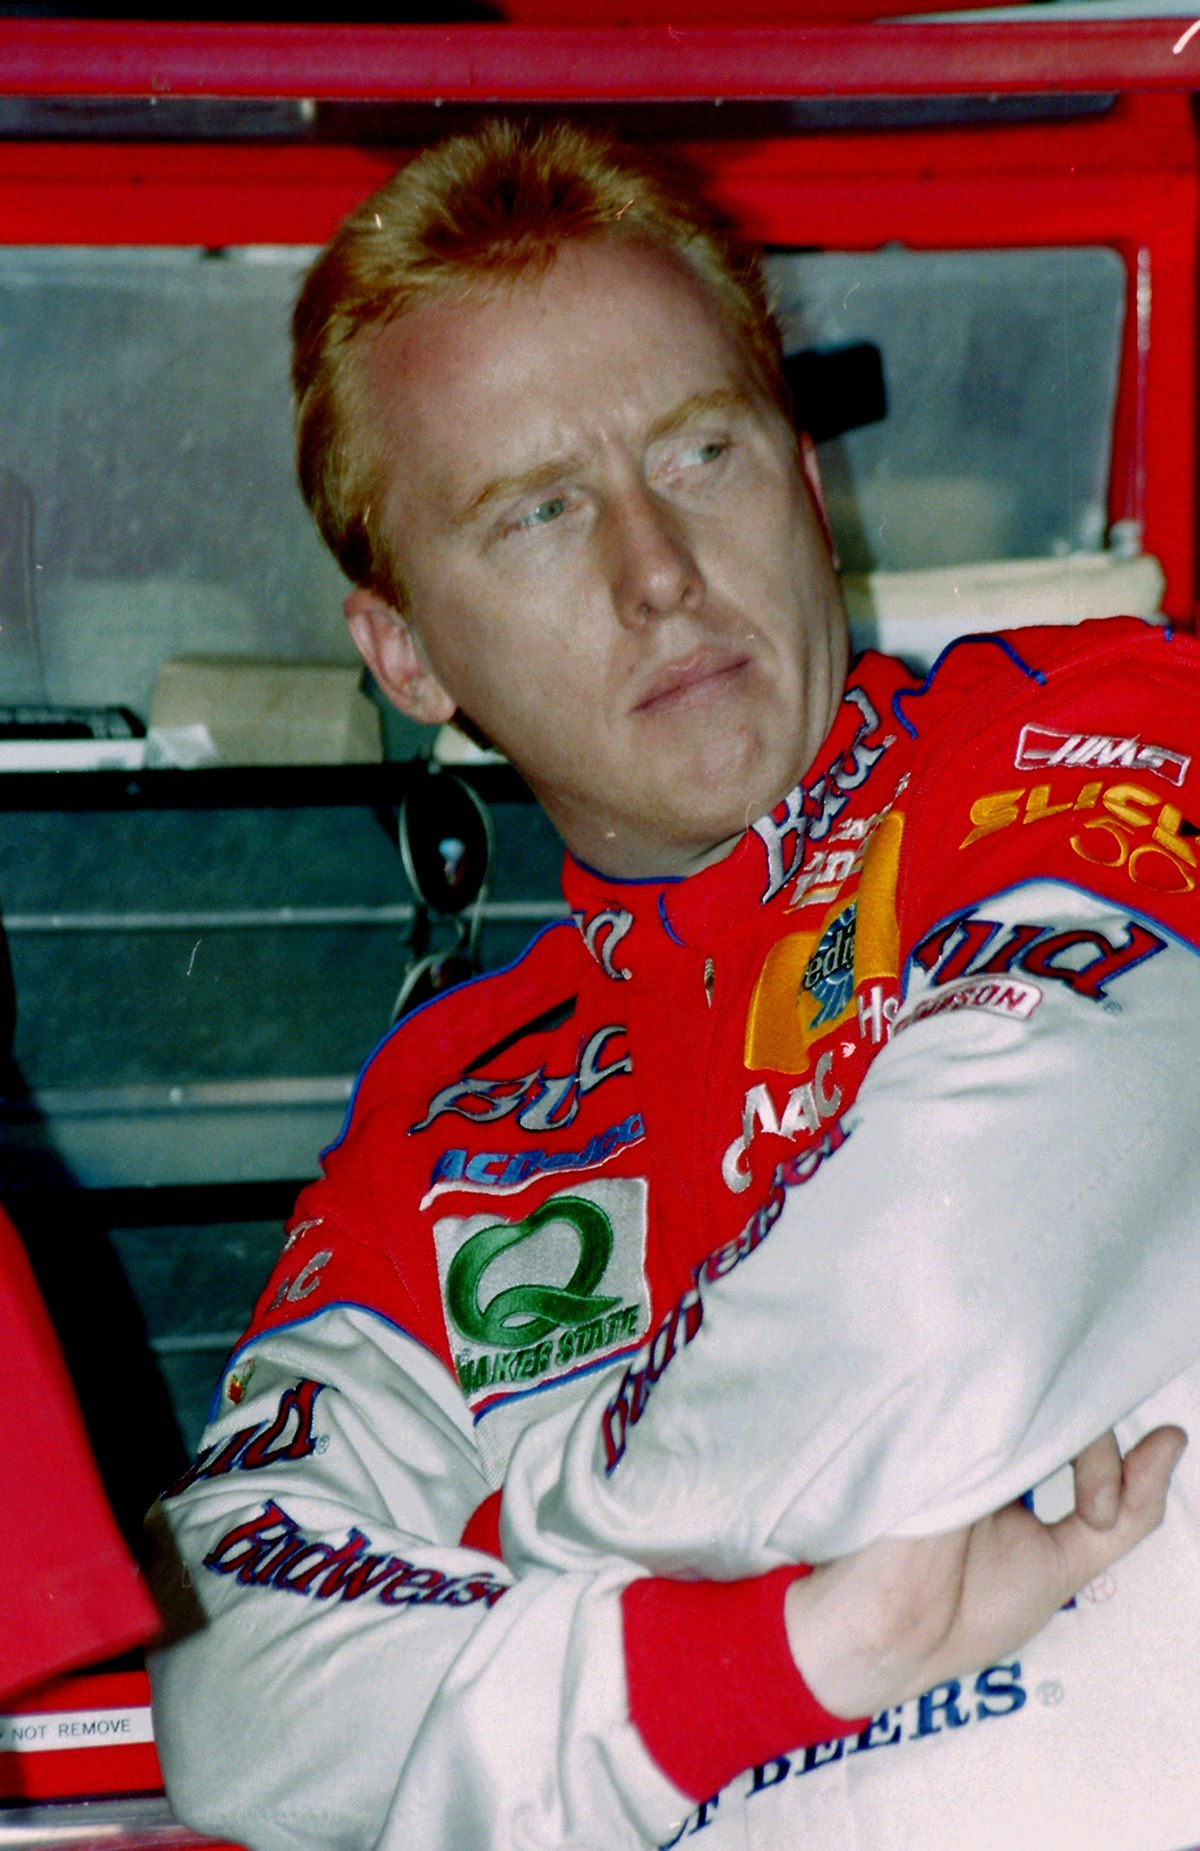 Px Ricky Craven on 1994 Dodge Truck